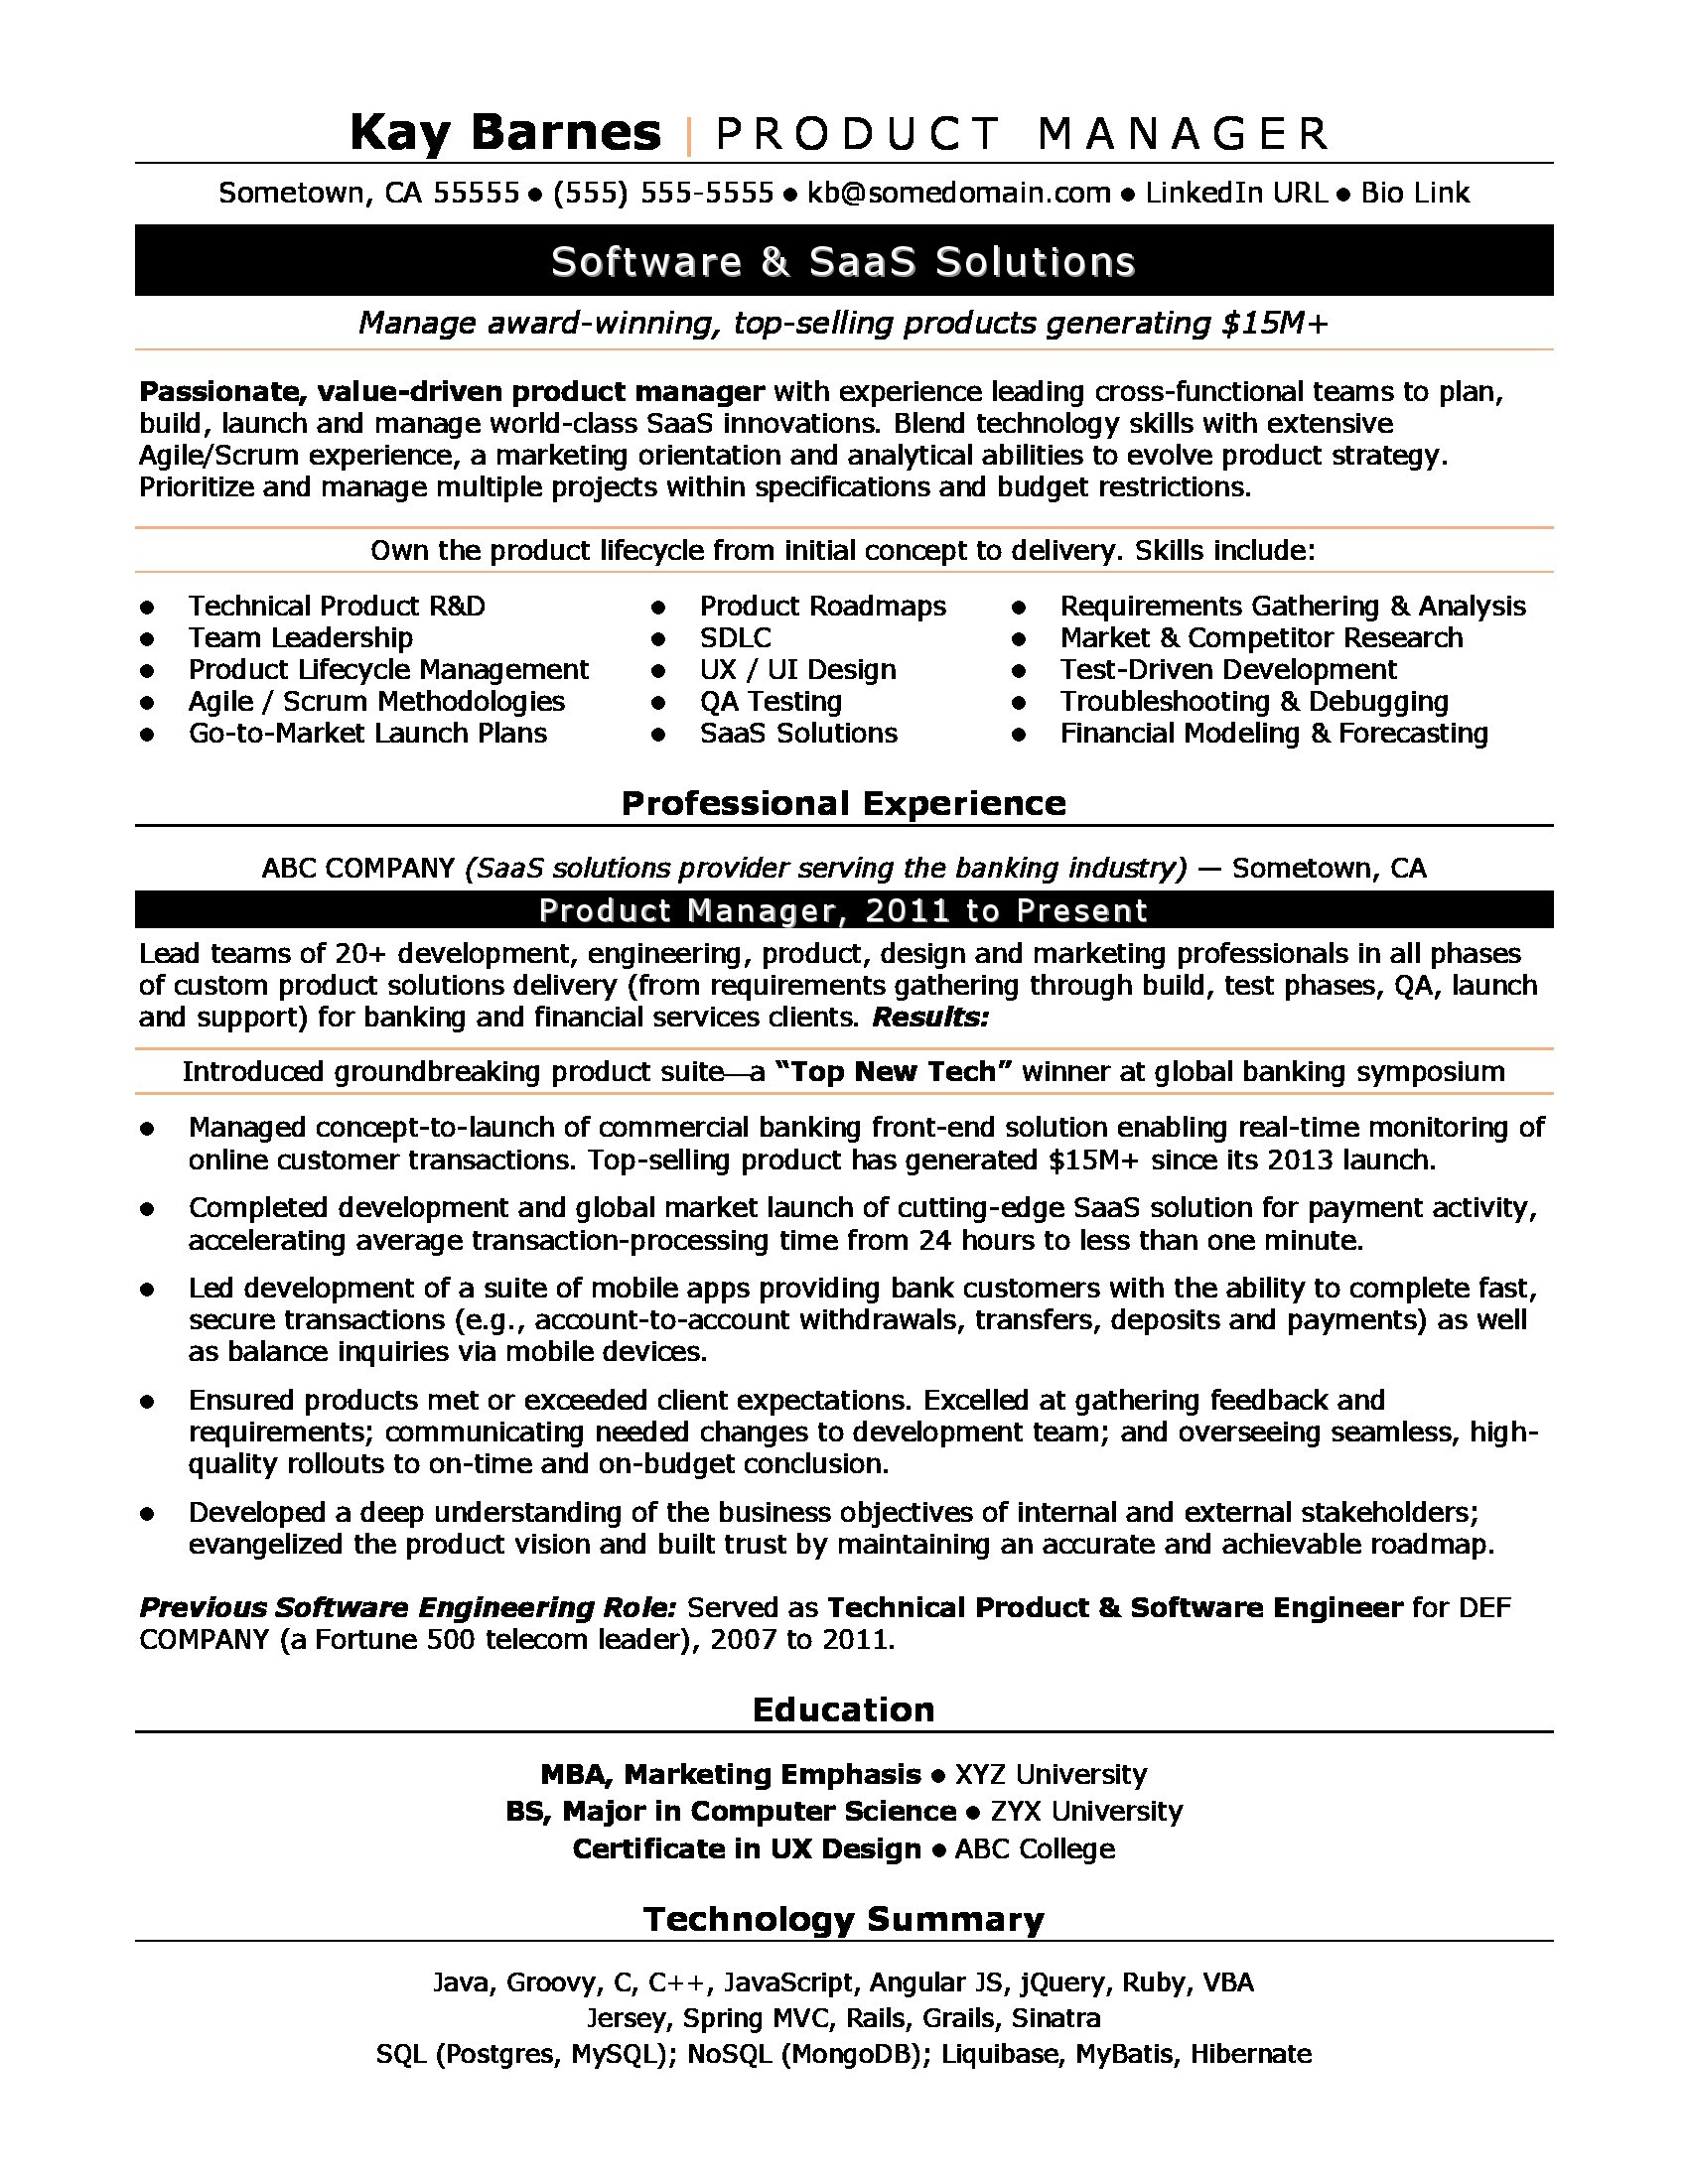 product manager resume sample - Resume Sample Of Product Manager